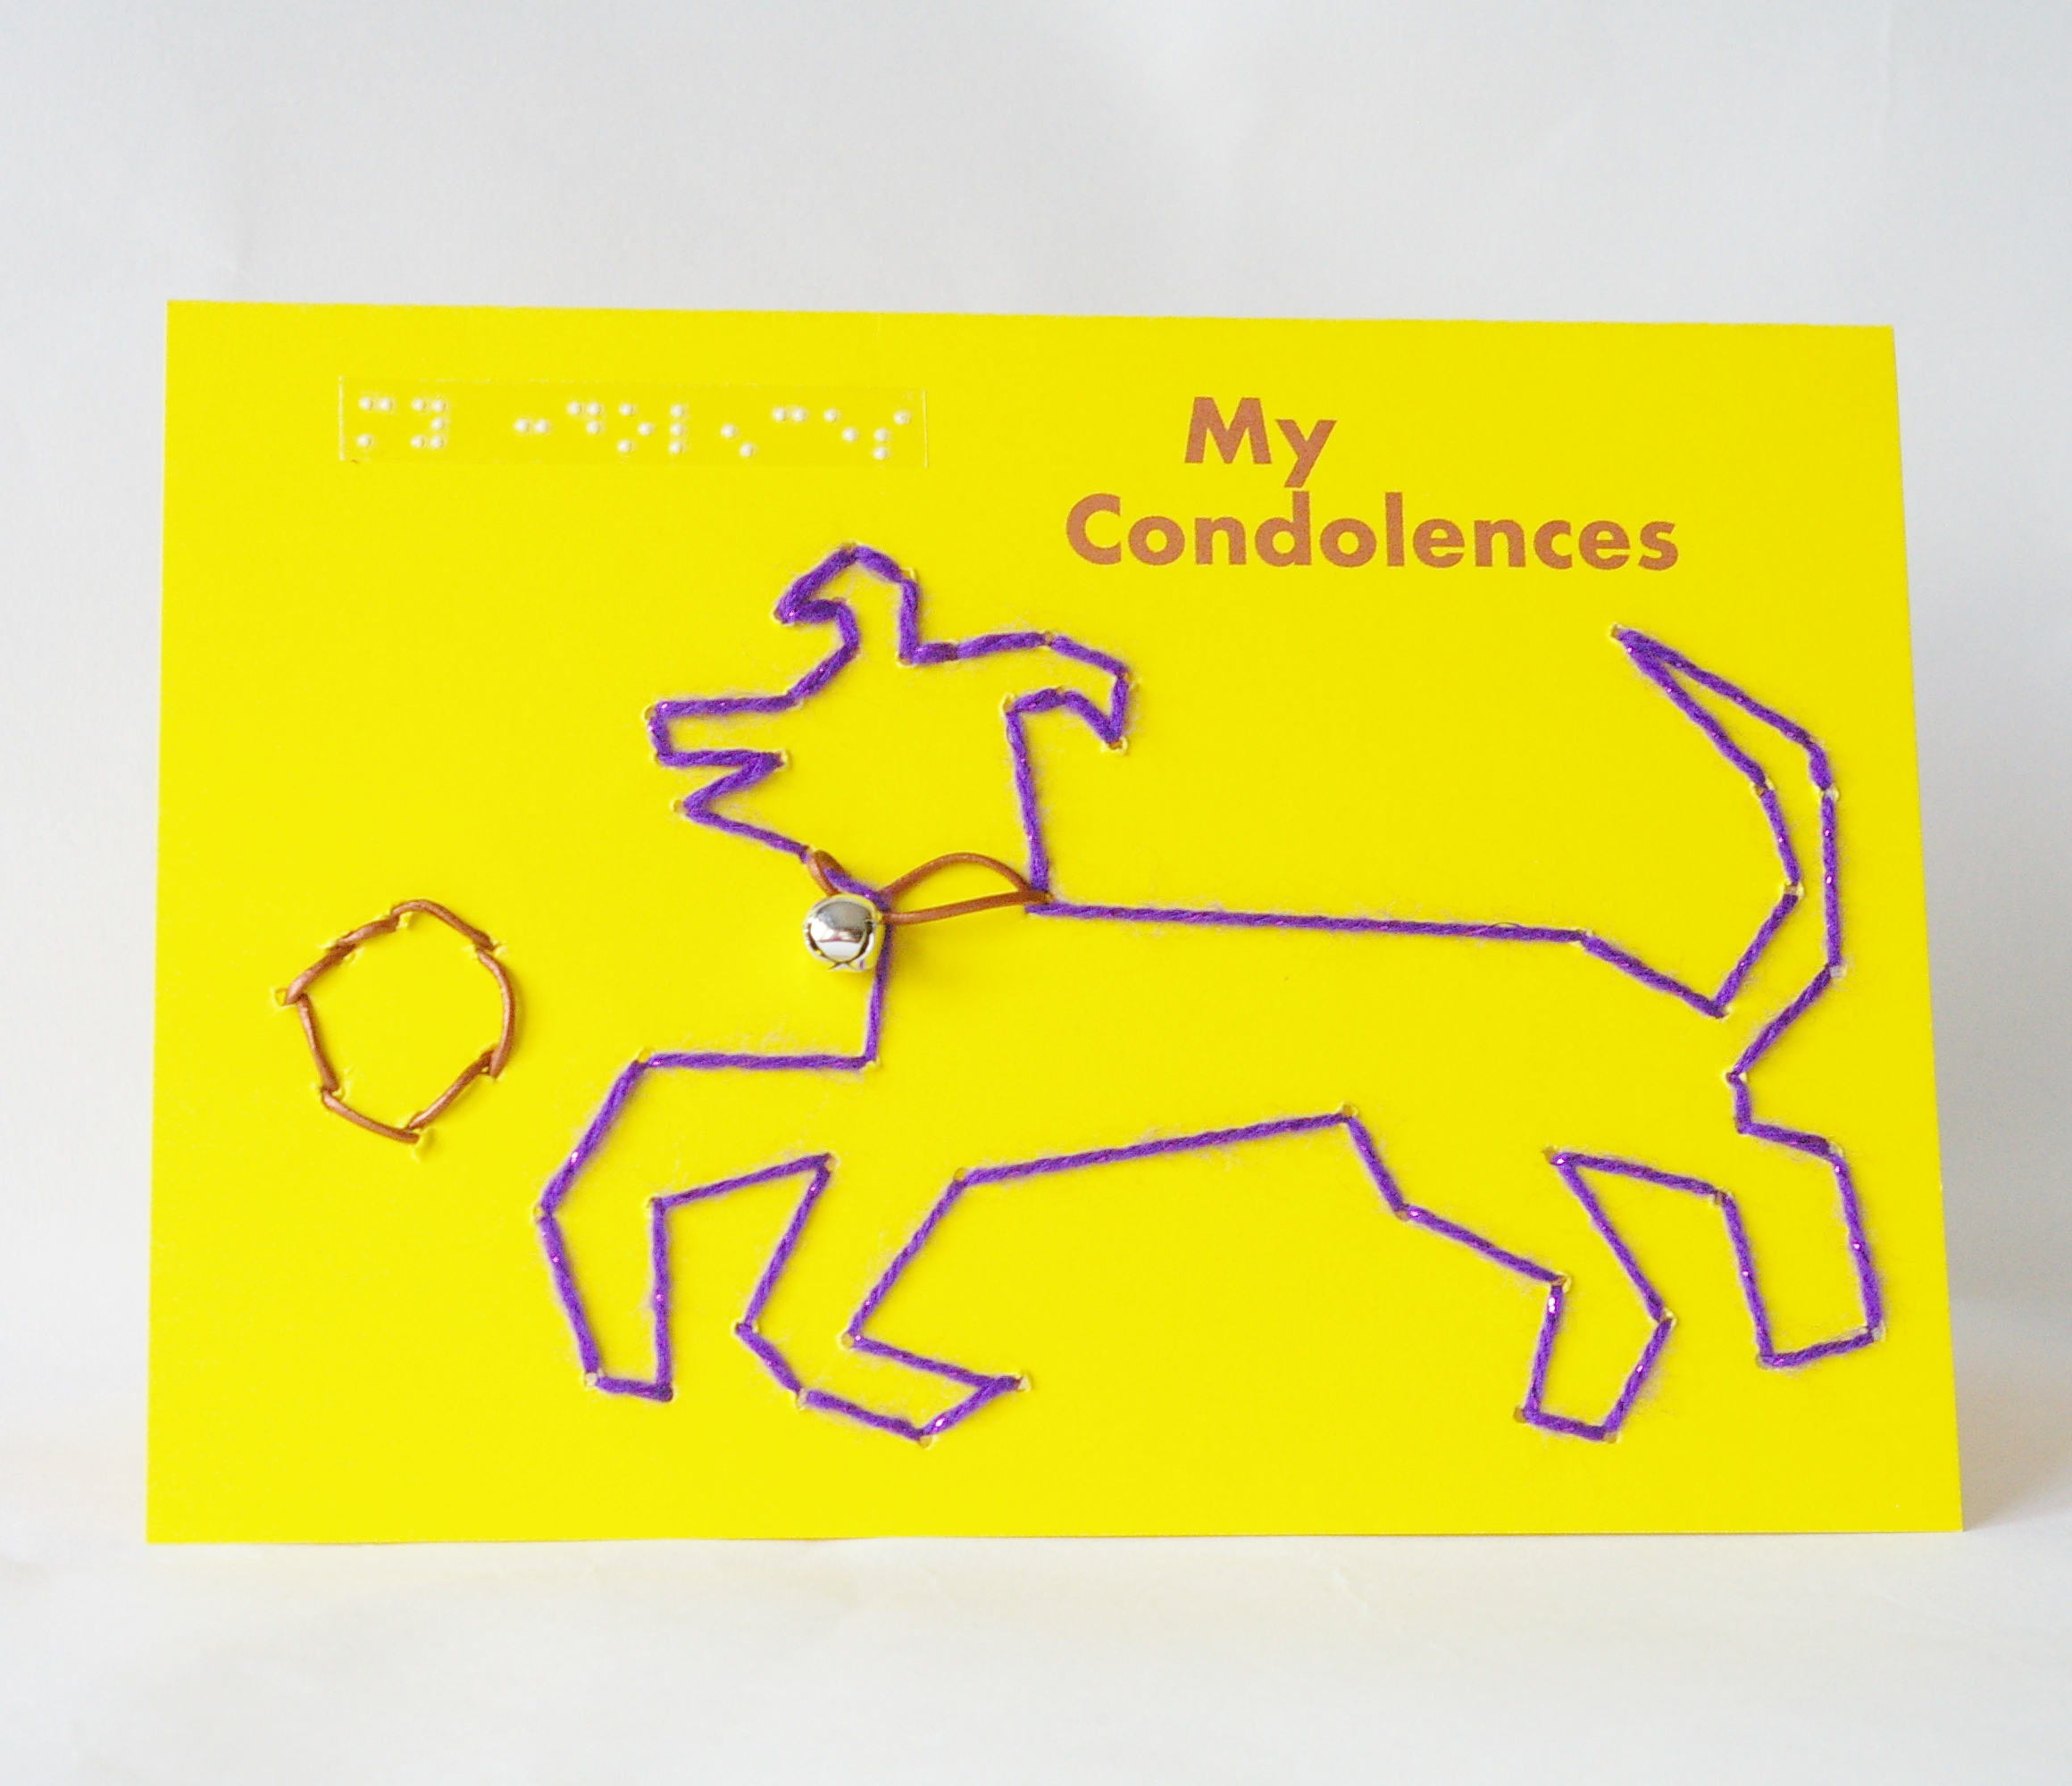 Purple sparkly dog with leather collar and silver bell audible, playing with leather ball on landscape yellow card